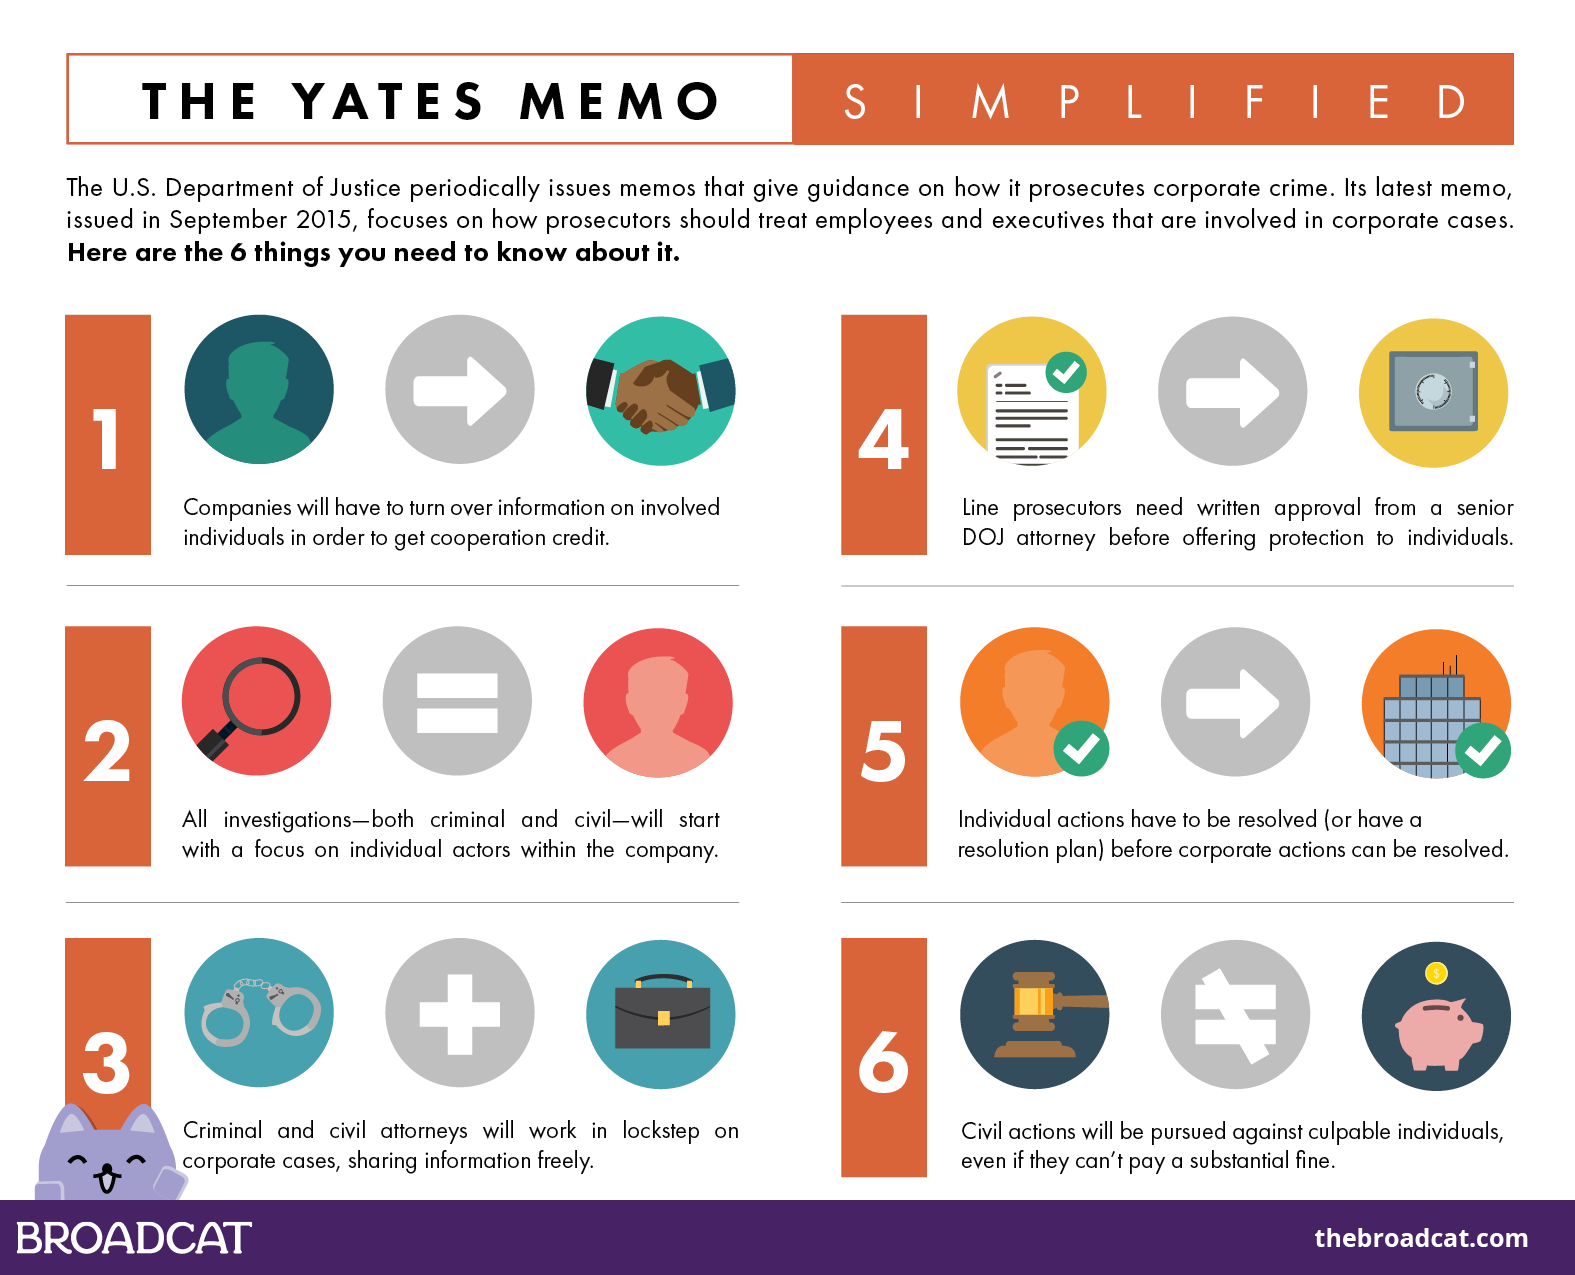 An infographic showing the six things you need to know about the Yates Memo.